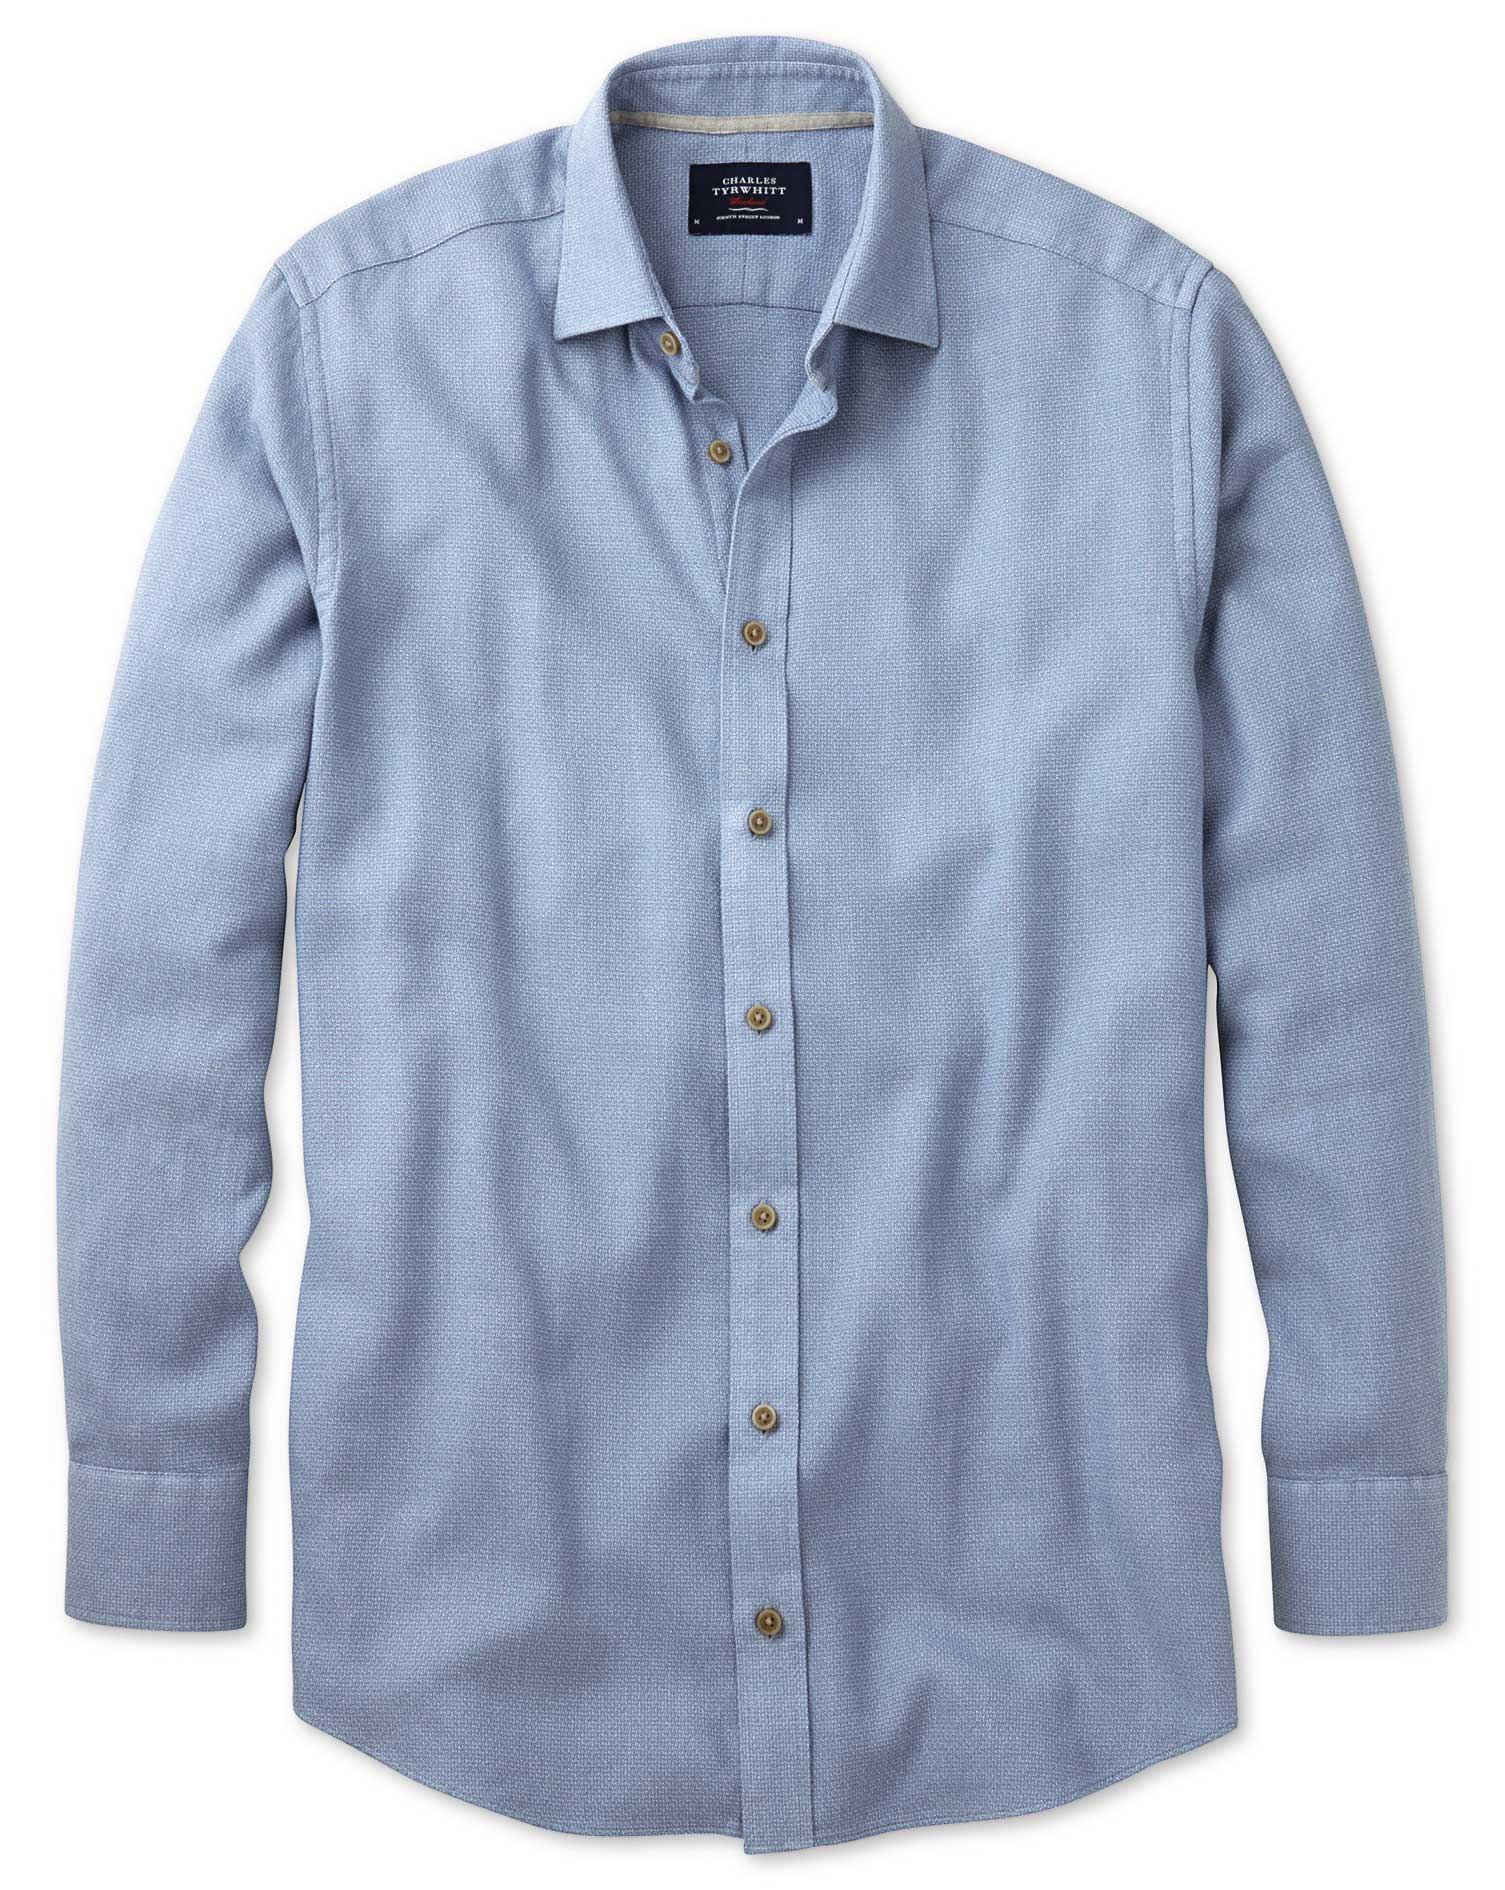 Classic Fit Mouline Mid Blue Textured Cotton Shirt Single Cuff Size Small by Charles Tyrwhitt